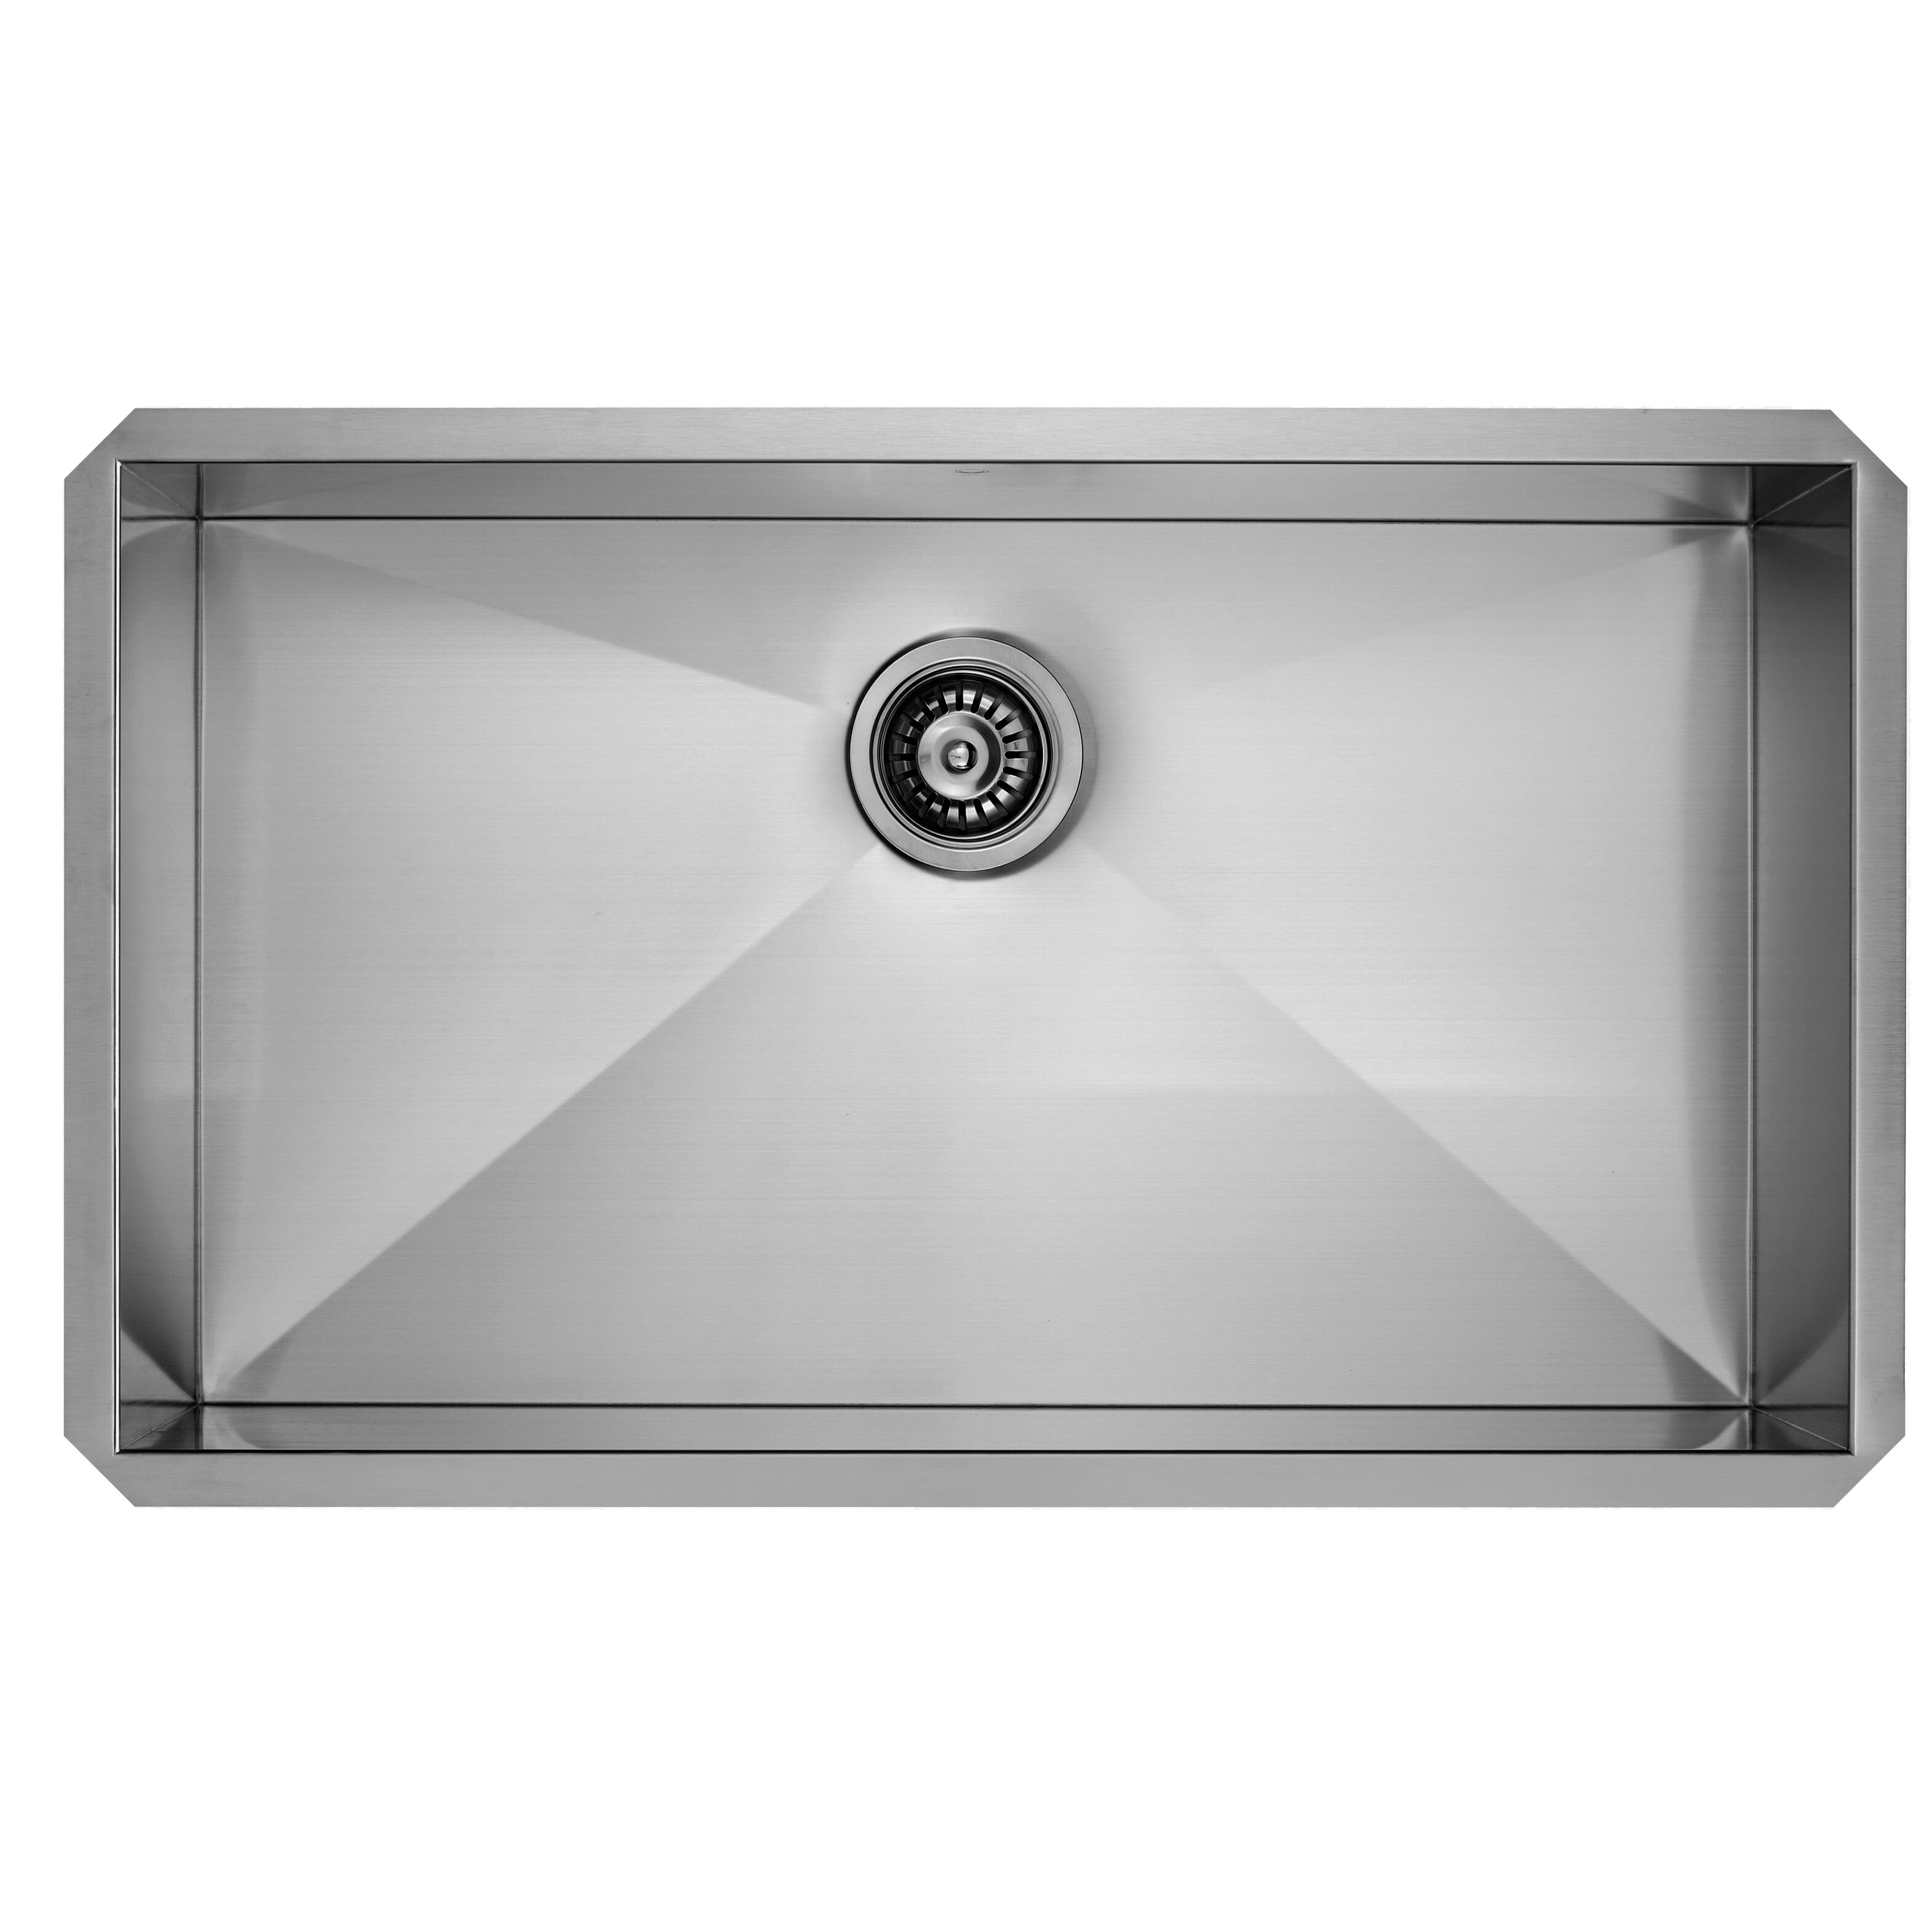 32 Inch Undermount Kitchen Sink : ... 32 inch Undermount Single Bowl 16 Gauge Stainless Steel Kitchen Sink